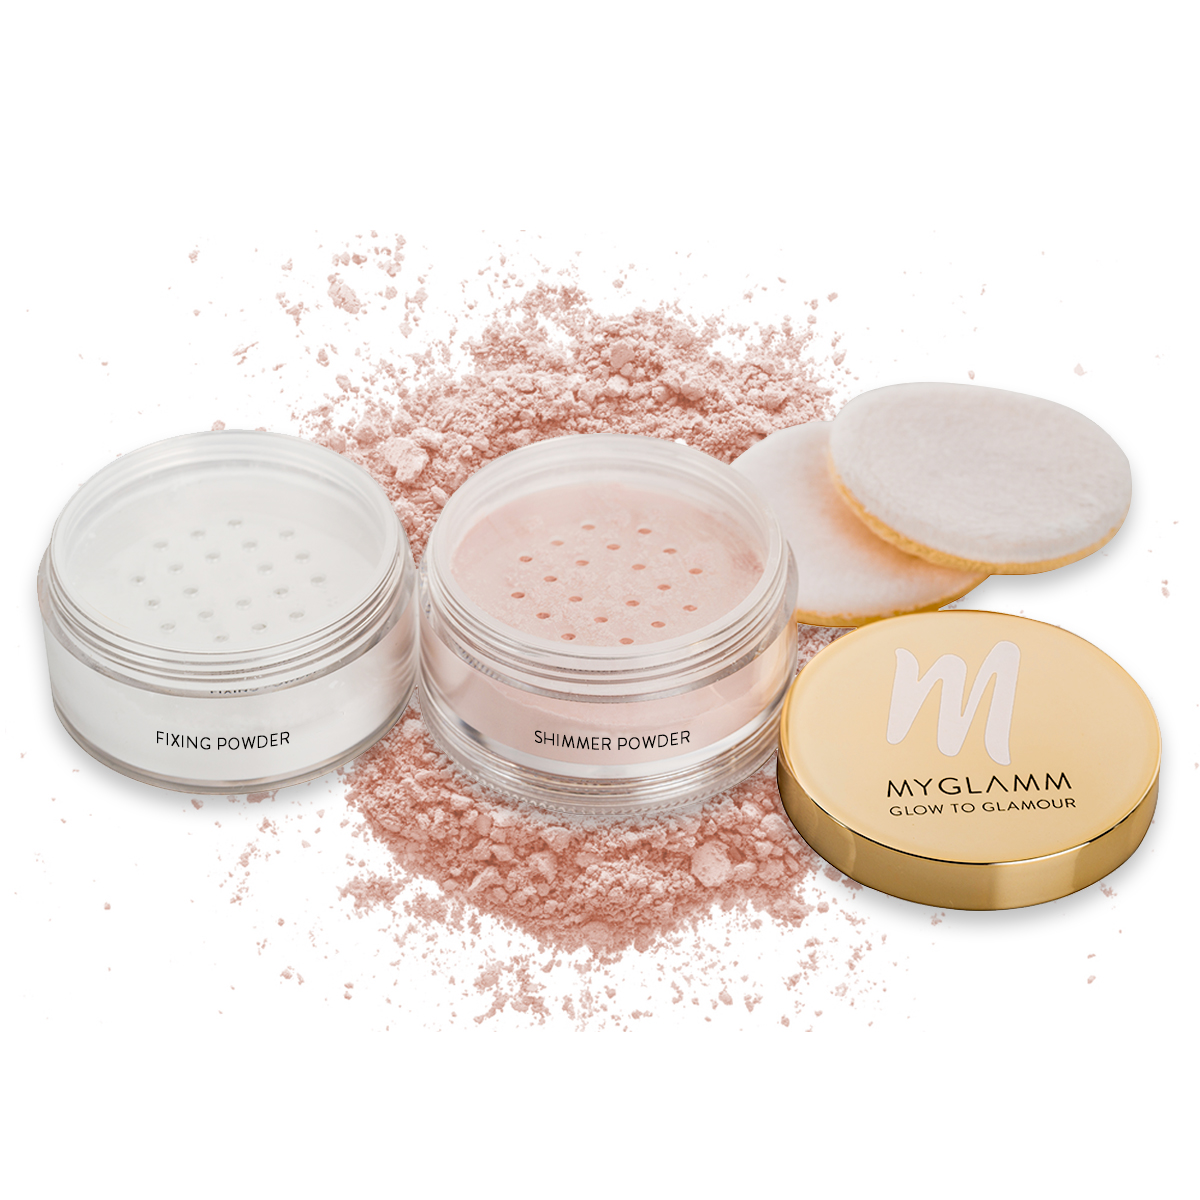 2 in 1 Shimmer + Fixing Powder